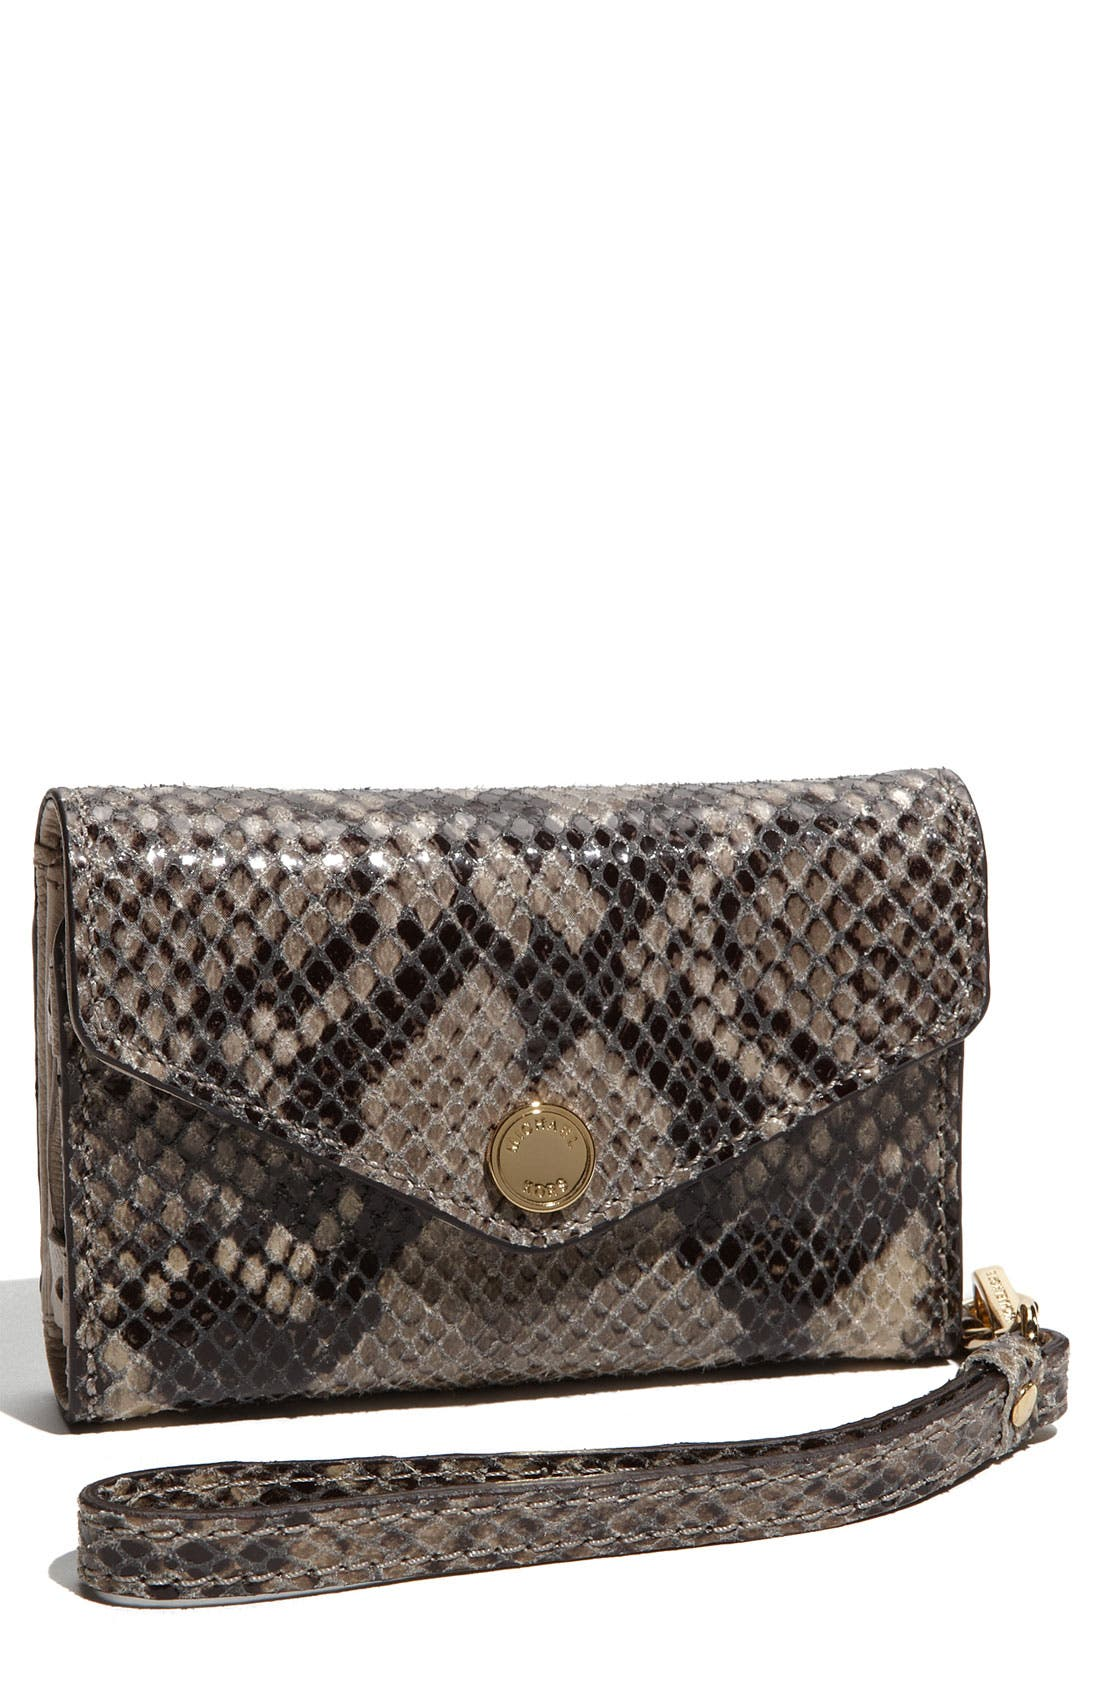 Alternate Image 1 Selected - MICHAEL Michael Kors 'Jet Set' iPhone Wristlet